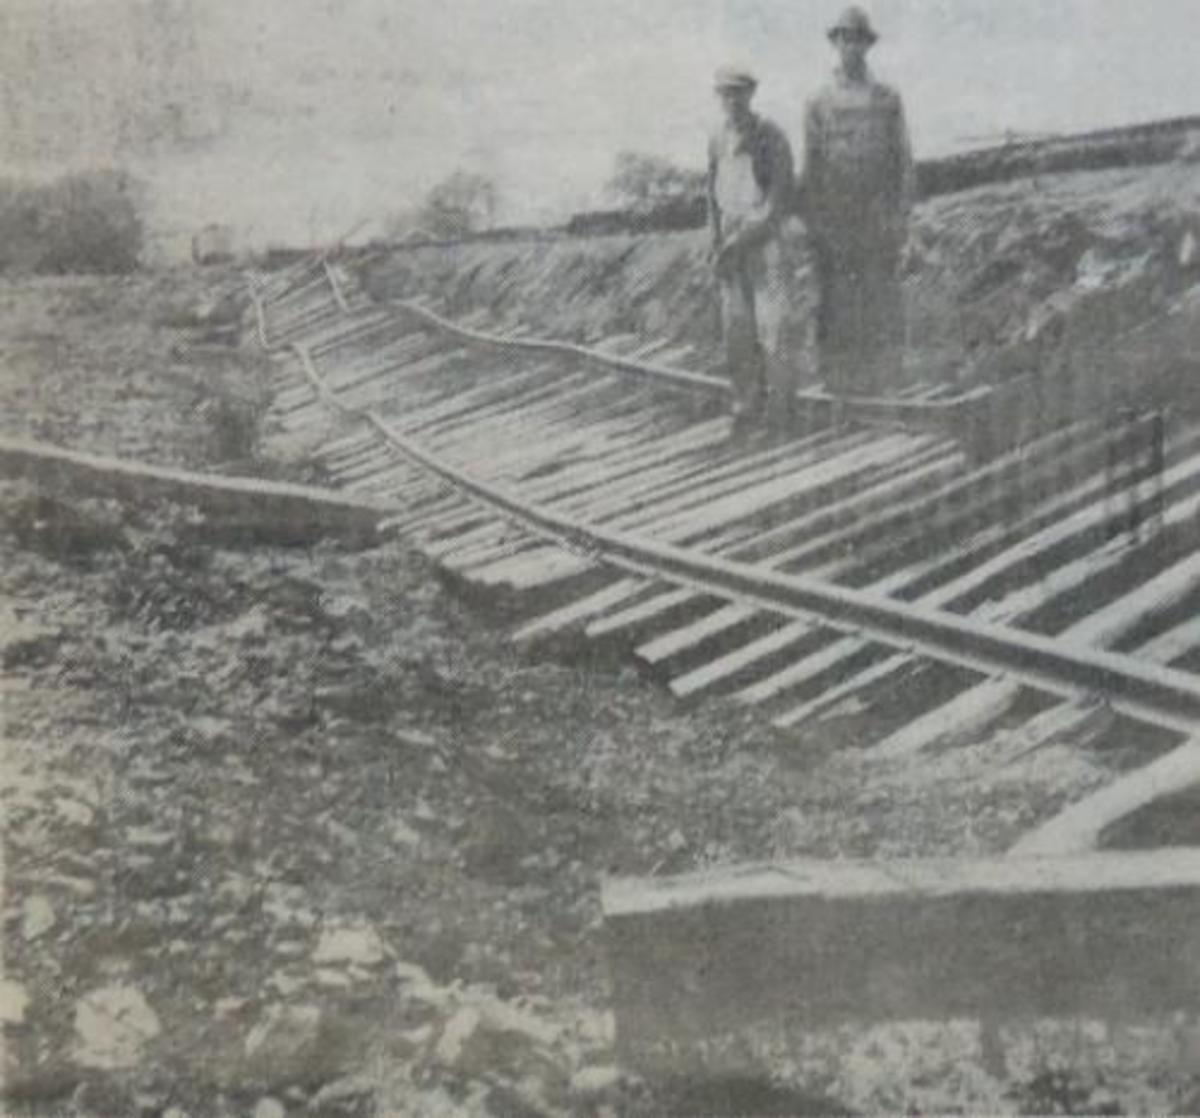 1929 Flood that damaged the rail lines in Wister